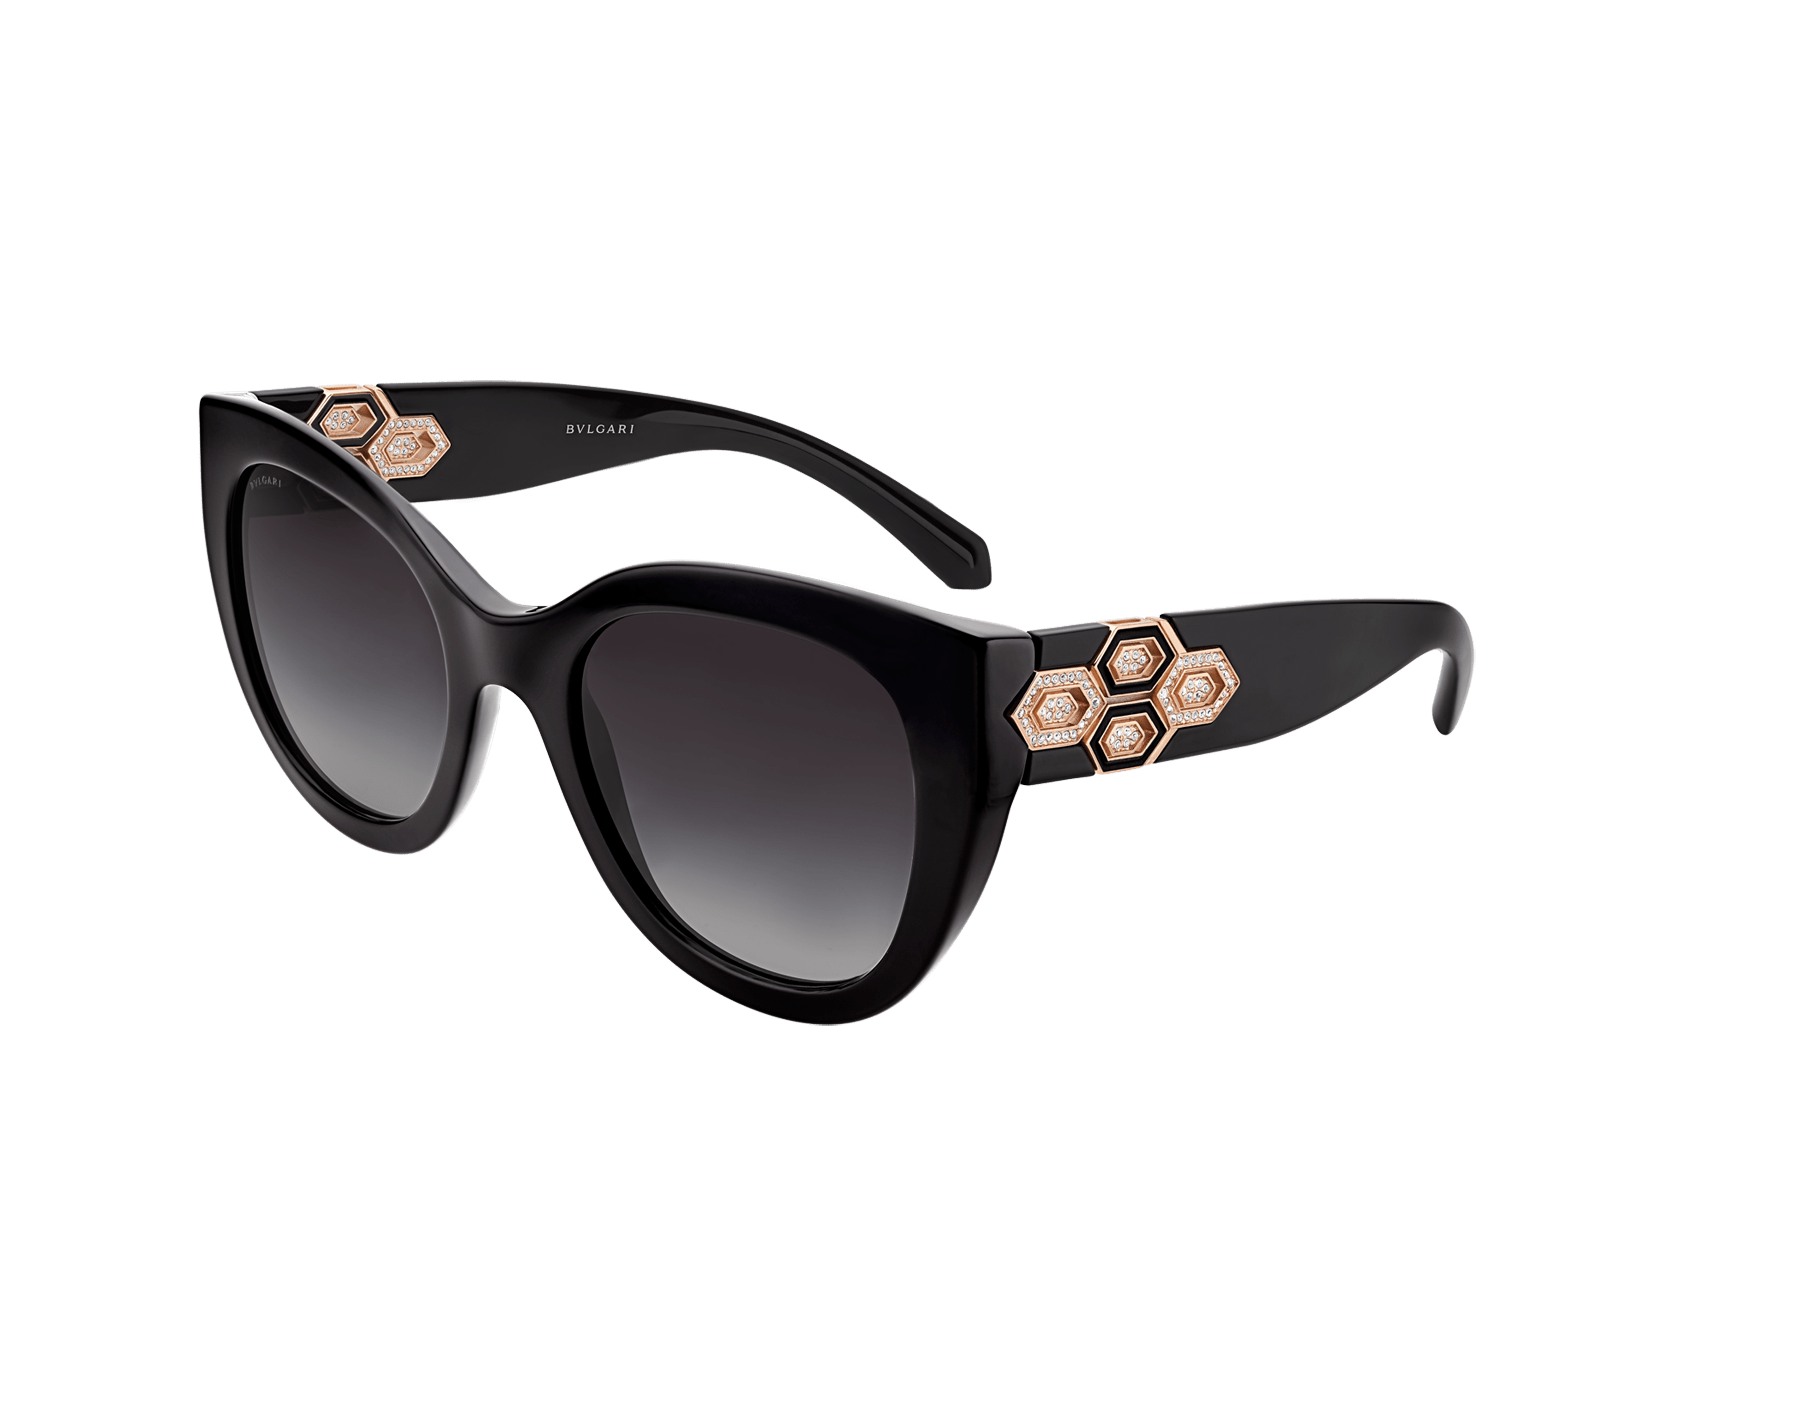 Bvlgari Serpenti squared bold acetate sunglasses with Serpenti metal décor and crystals. 903741 image 1